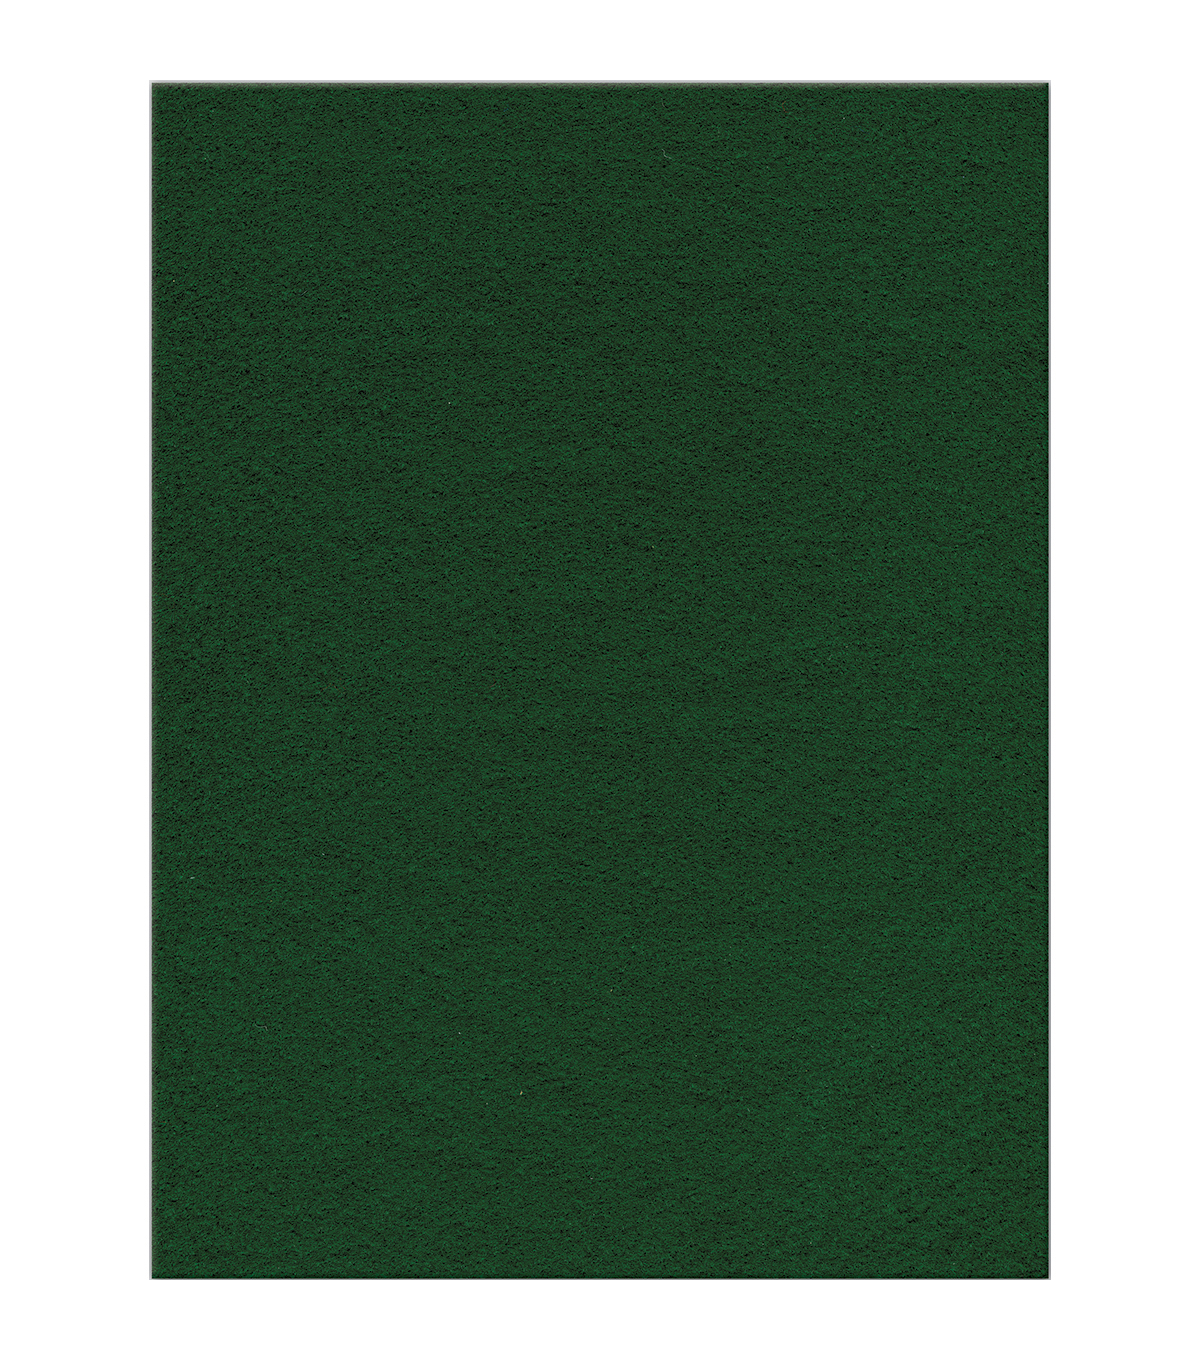 Presto Felt 9\u0022X12\u0022 - Kelly Green 12/pack